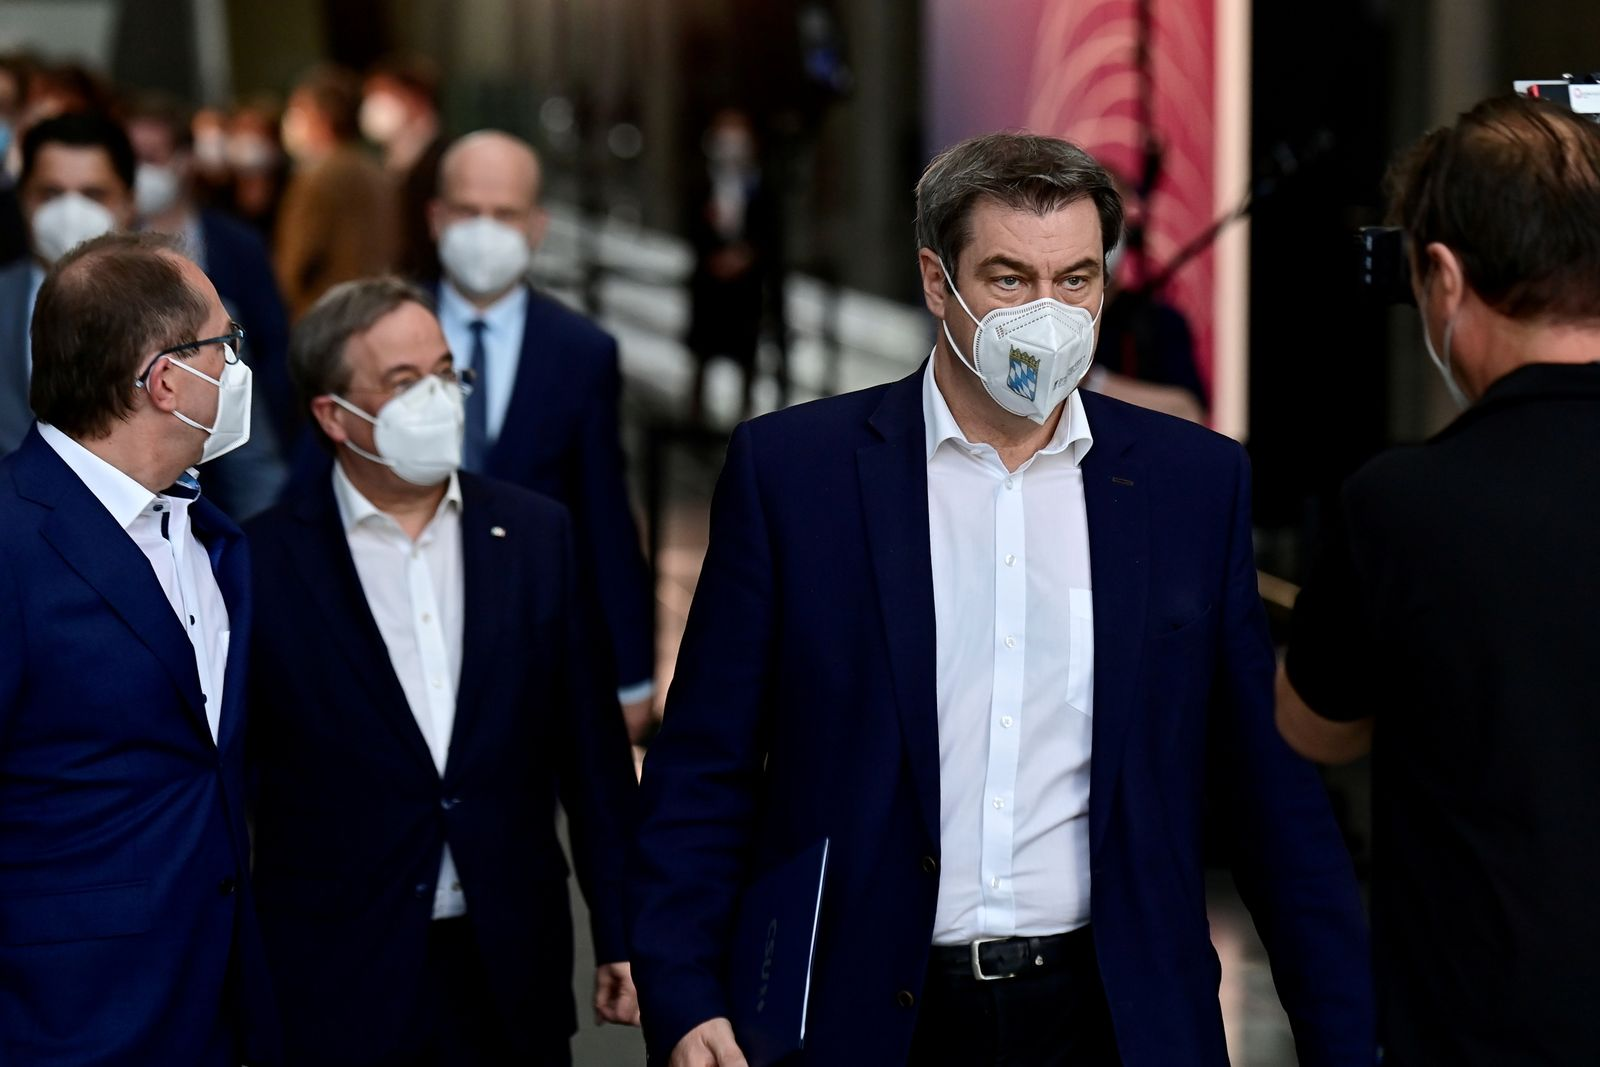 Bavarian State Premier and a leader of the Bavarian Christian Social Union (CSU) Markus Soder leaves following a news conference in Berlin